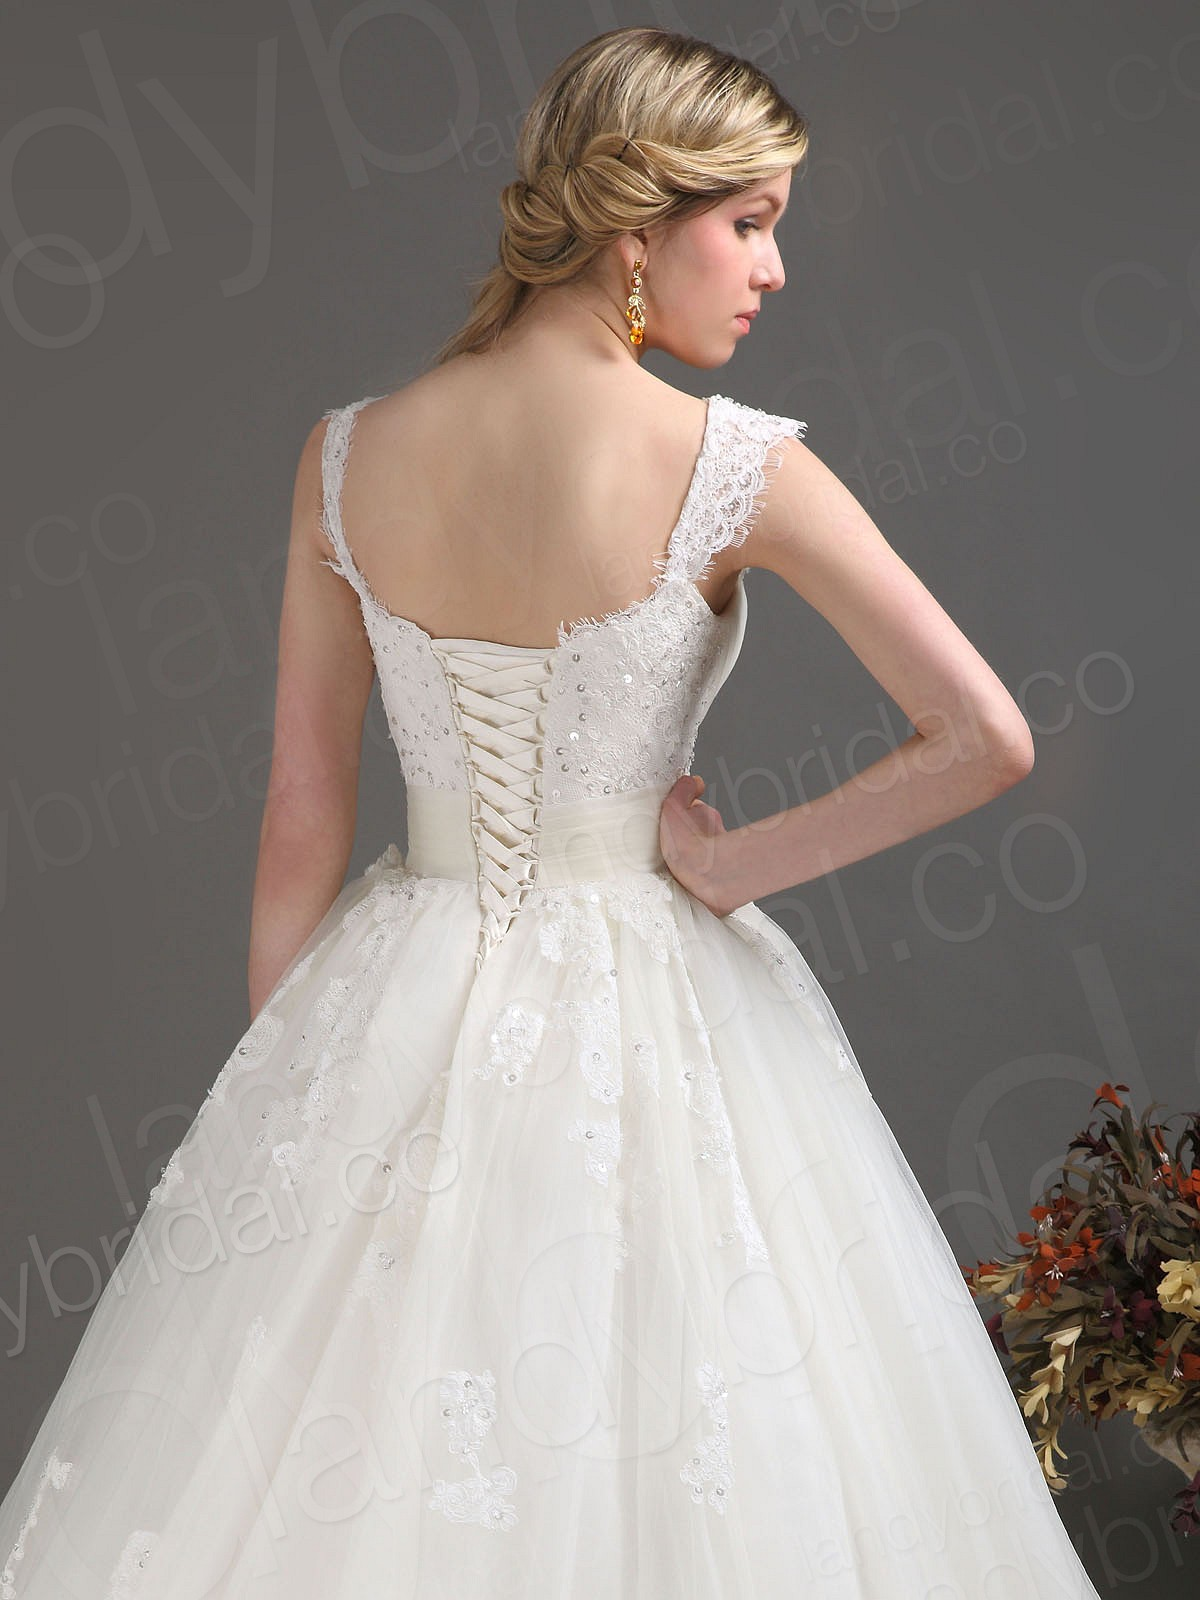 Wedding Dresses Lace Corset Back - High Cut Wedding Dresses